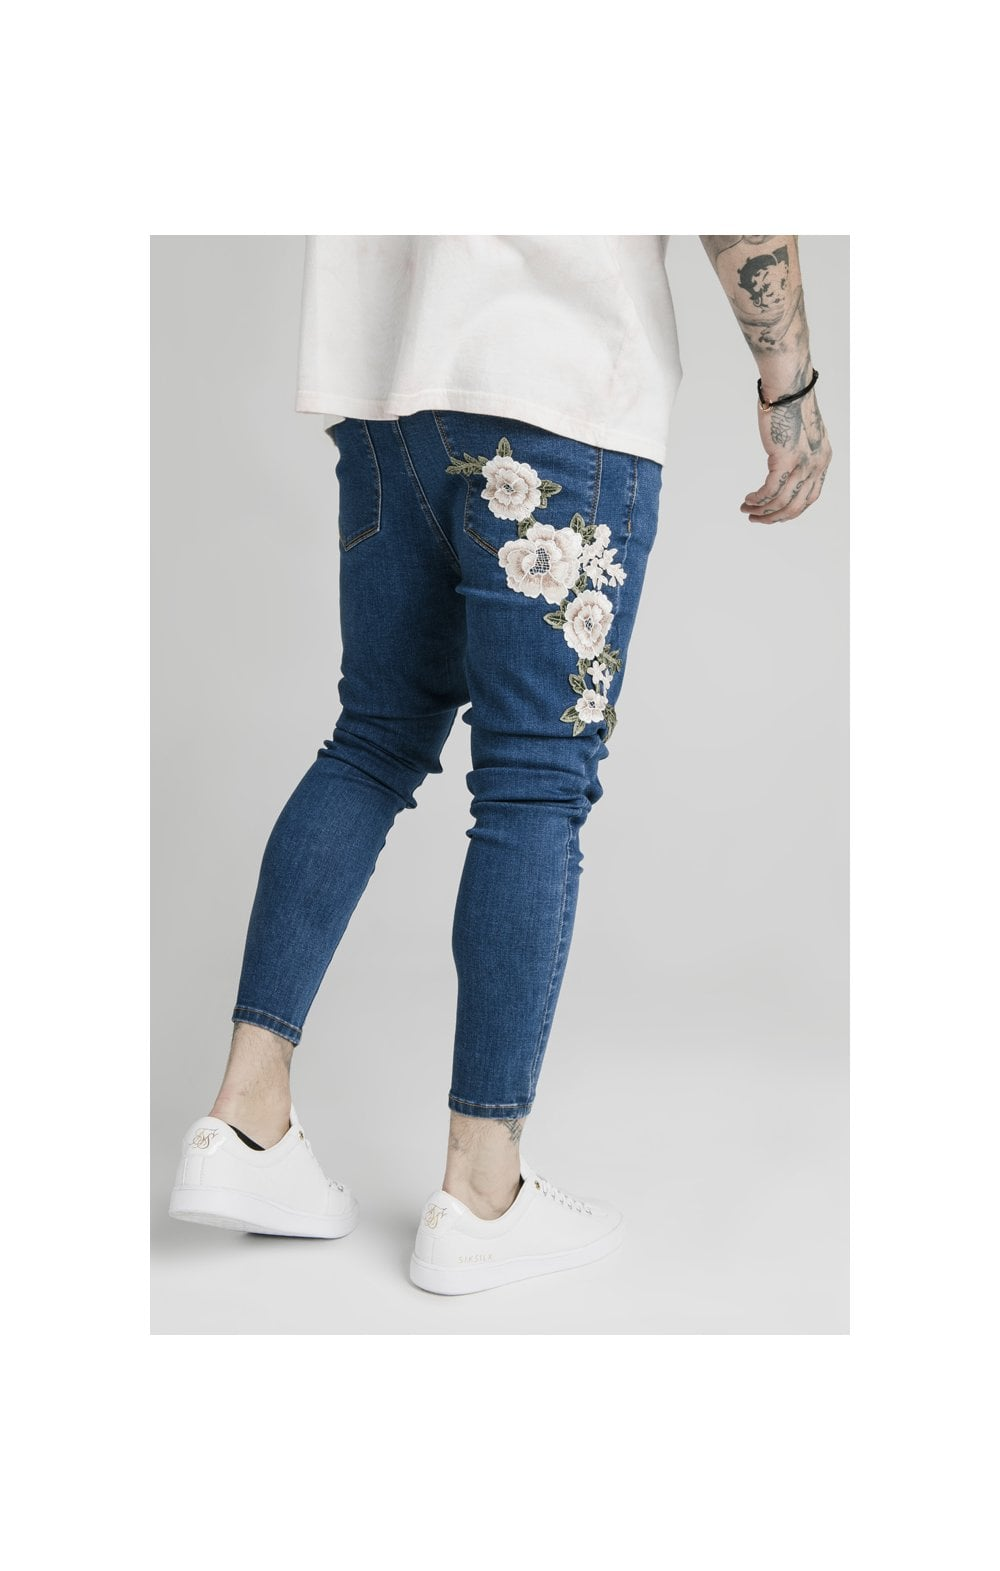 Load image into Gallery viewer, SikSilk Drop Crotch Pleated Appliqu Denims - Midstone (3)